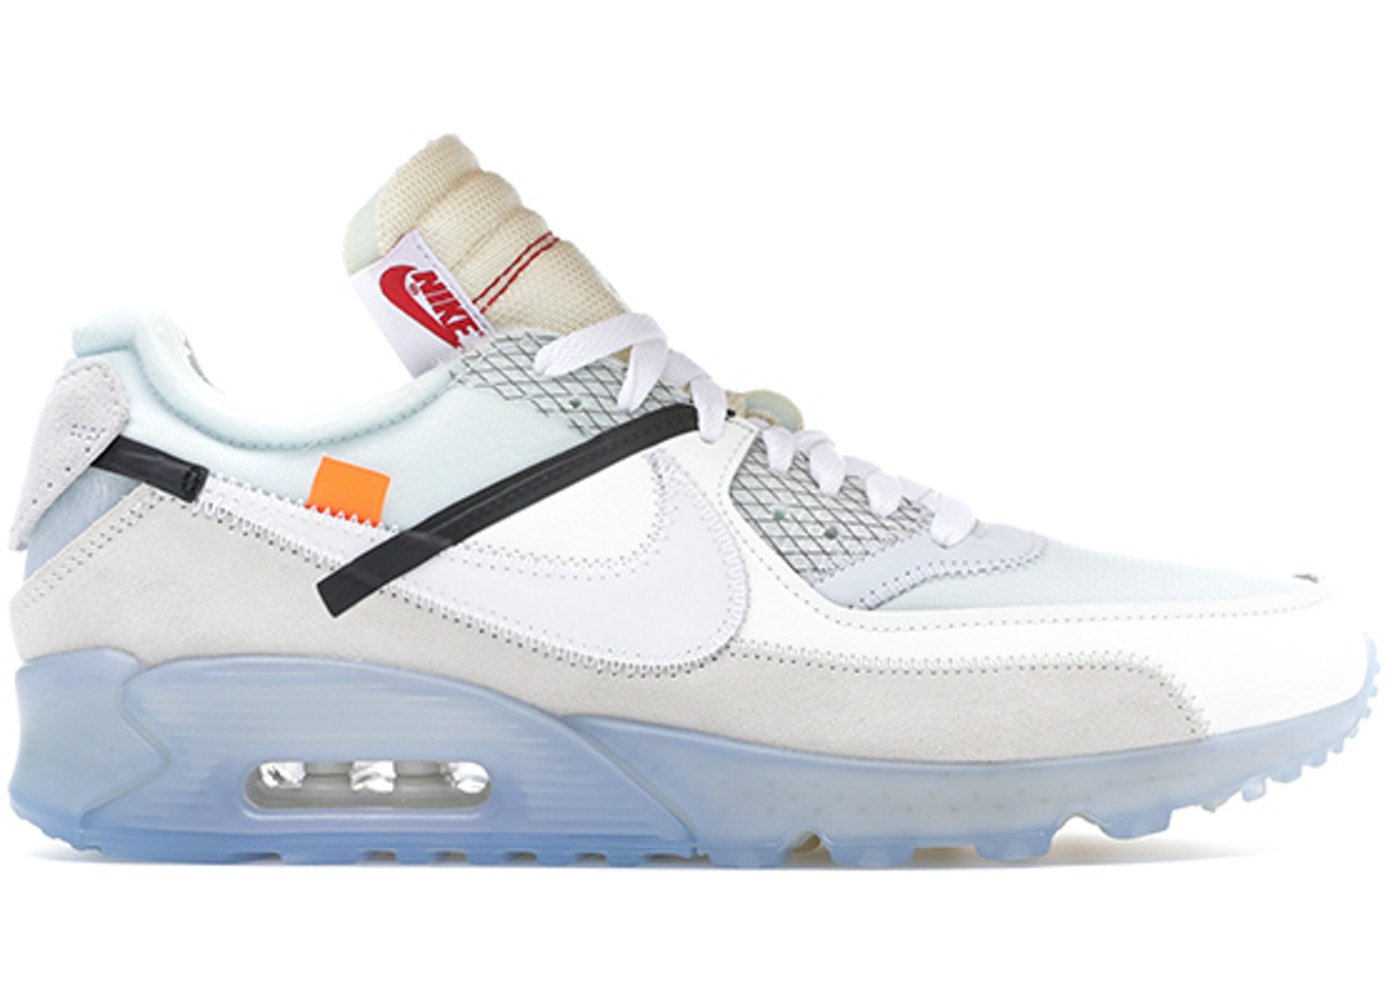 89b6ebfb Air Max 90 OFF-WHITE - AA7293-100